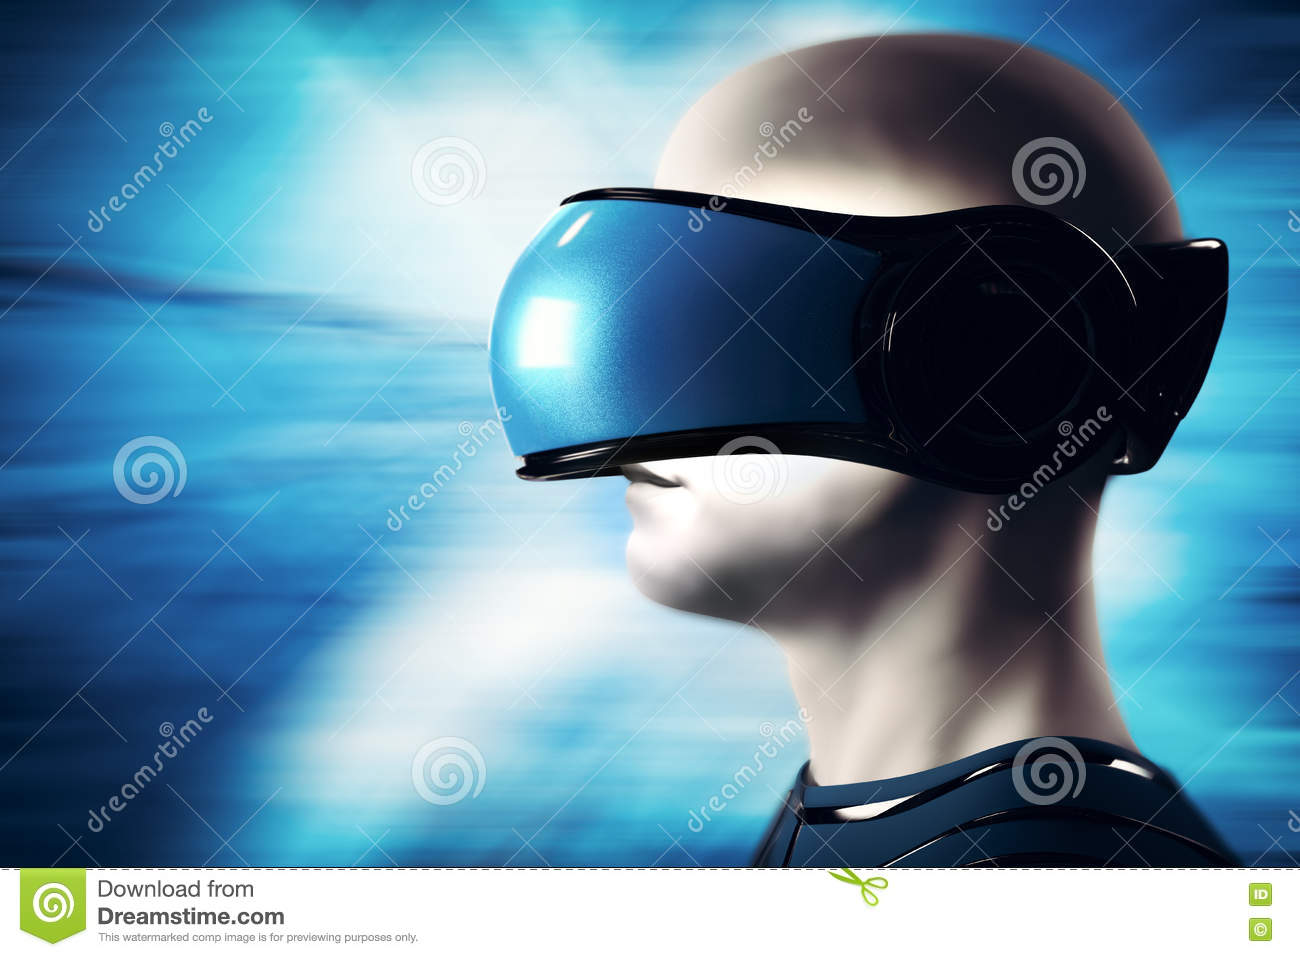 What's the future of virtual reality?